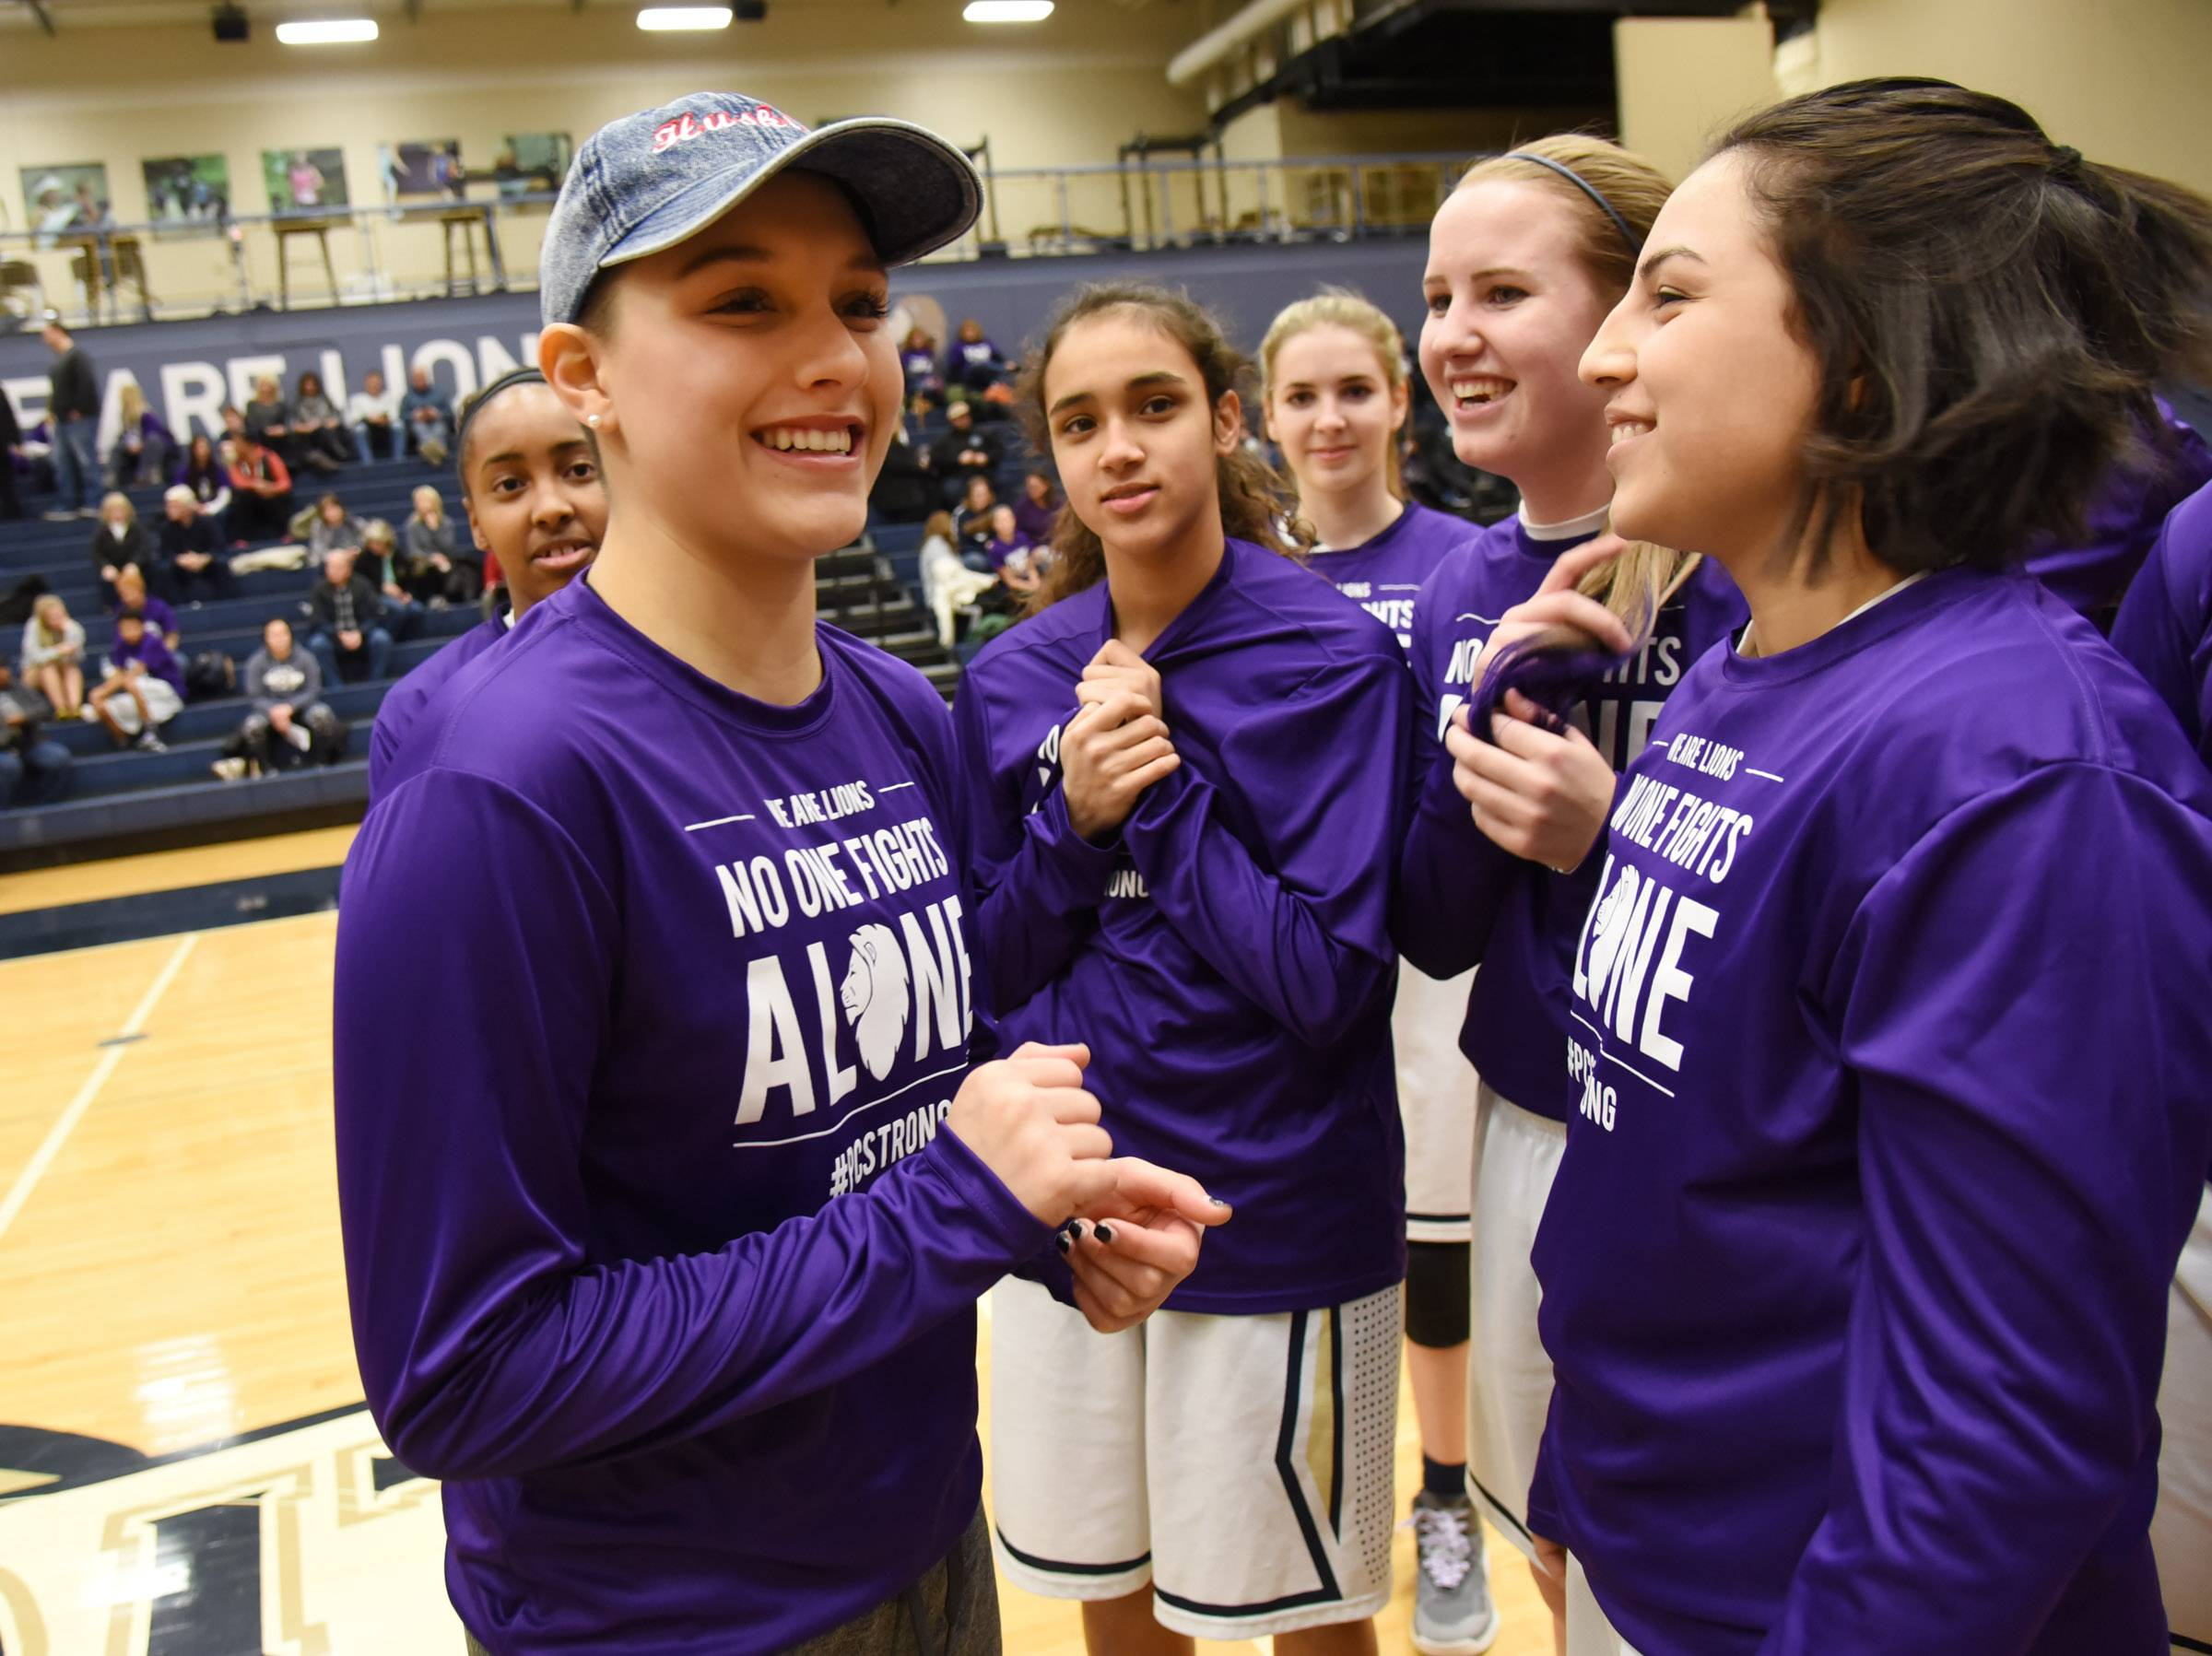 Harvest Christian Academy alumni Paulina Castro, left, is greeted by her former teammates before the girls basketball game Friday in Elgin. She is now a NIU freshman who is battling Hodgkin's lymphoma.